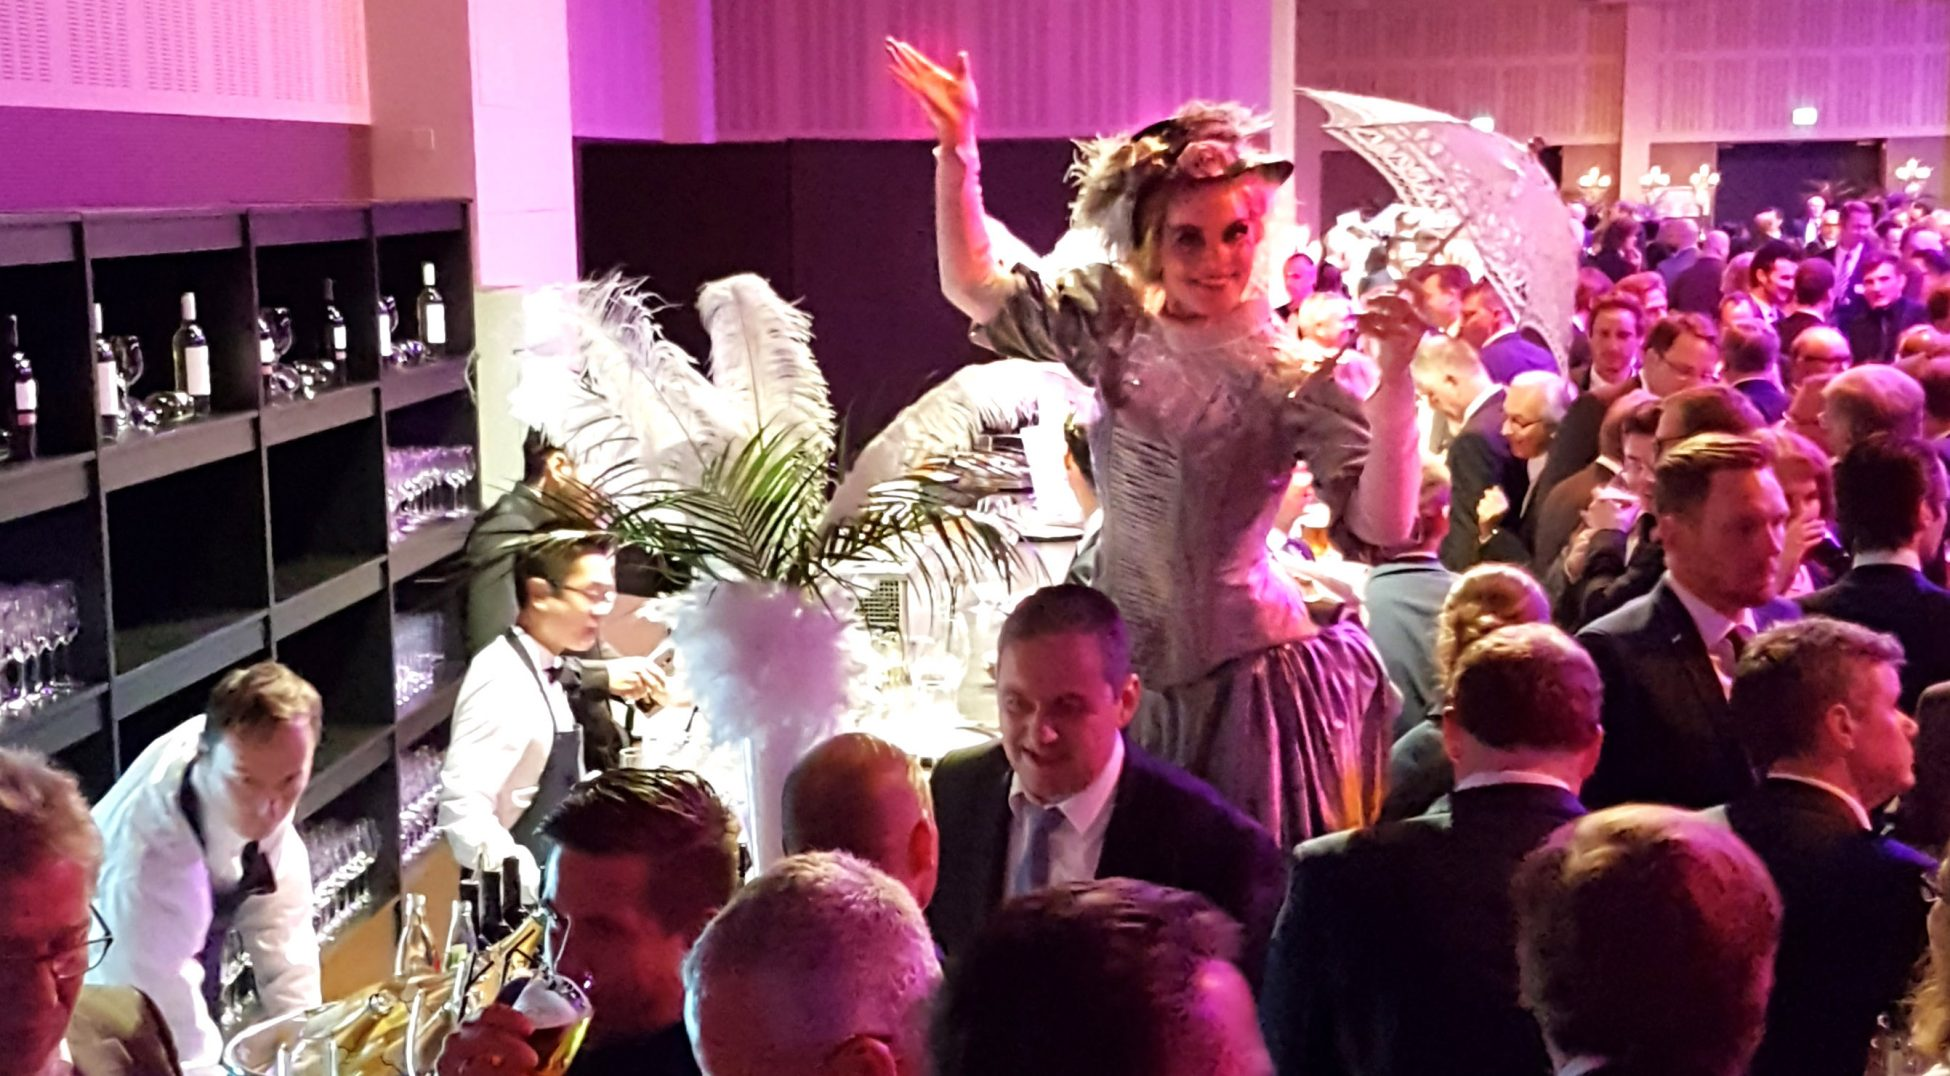 Stelzenlaufer-Event-The-Great-Gatsby